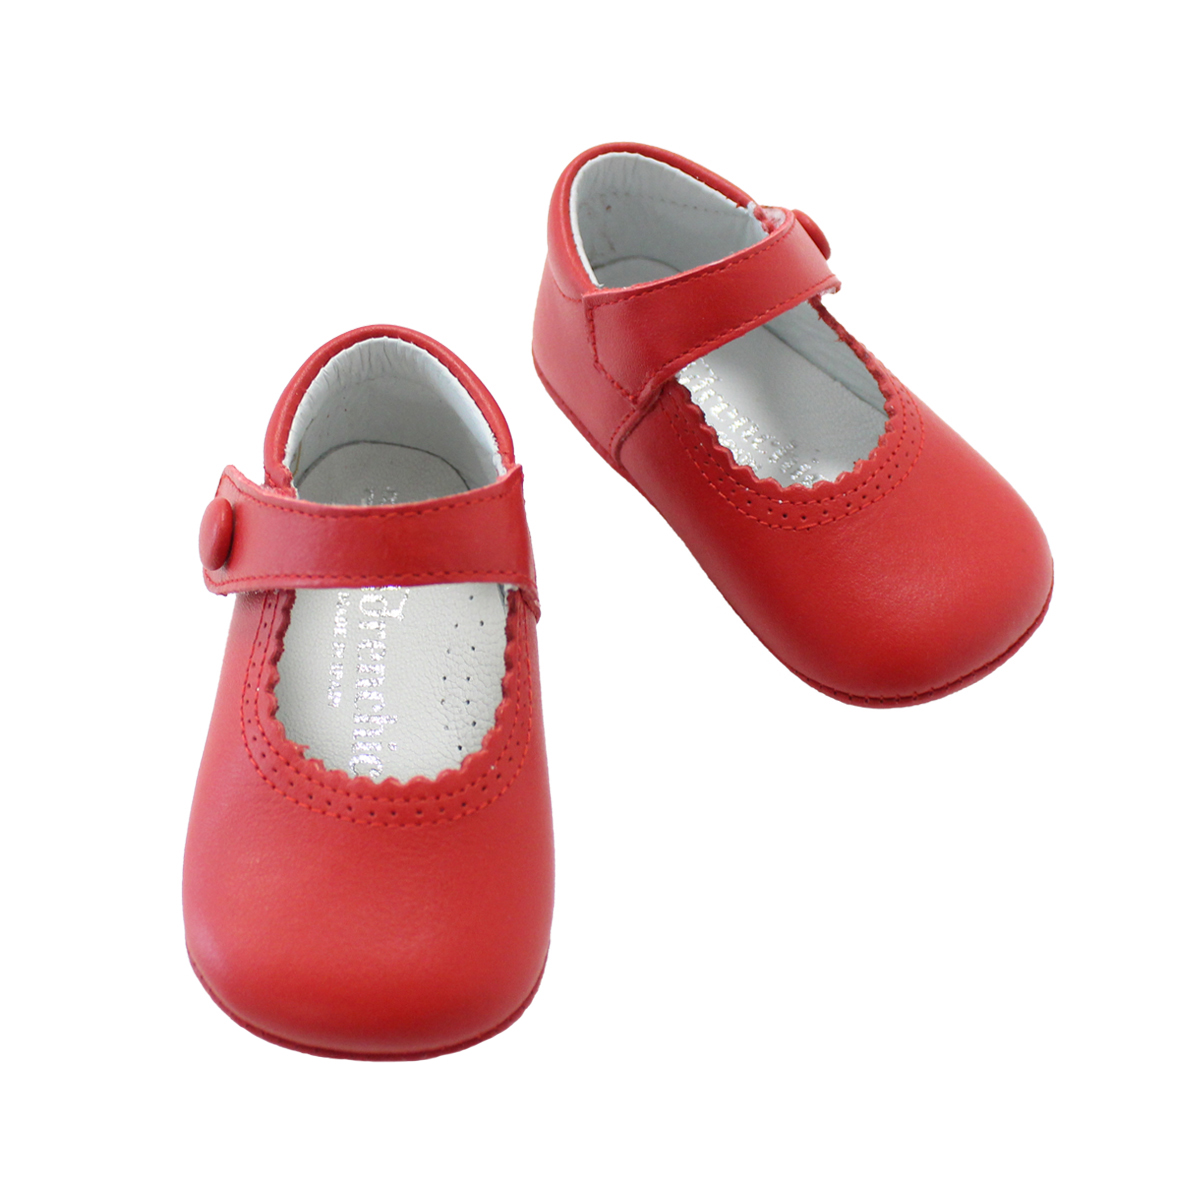 ChildrenChic Baby Mary Jane Shoe in Red